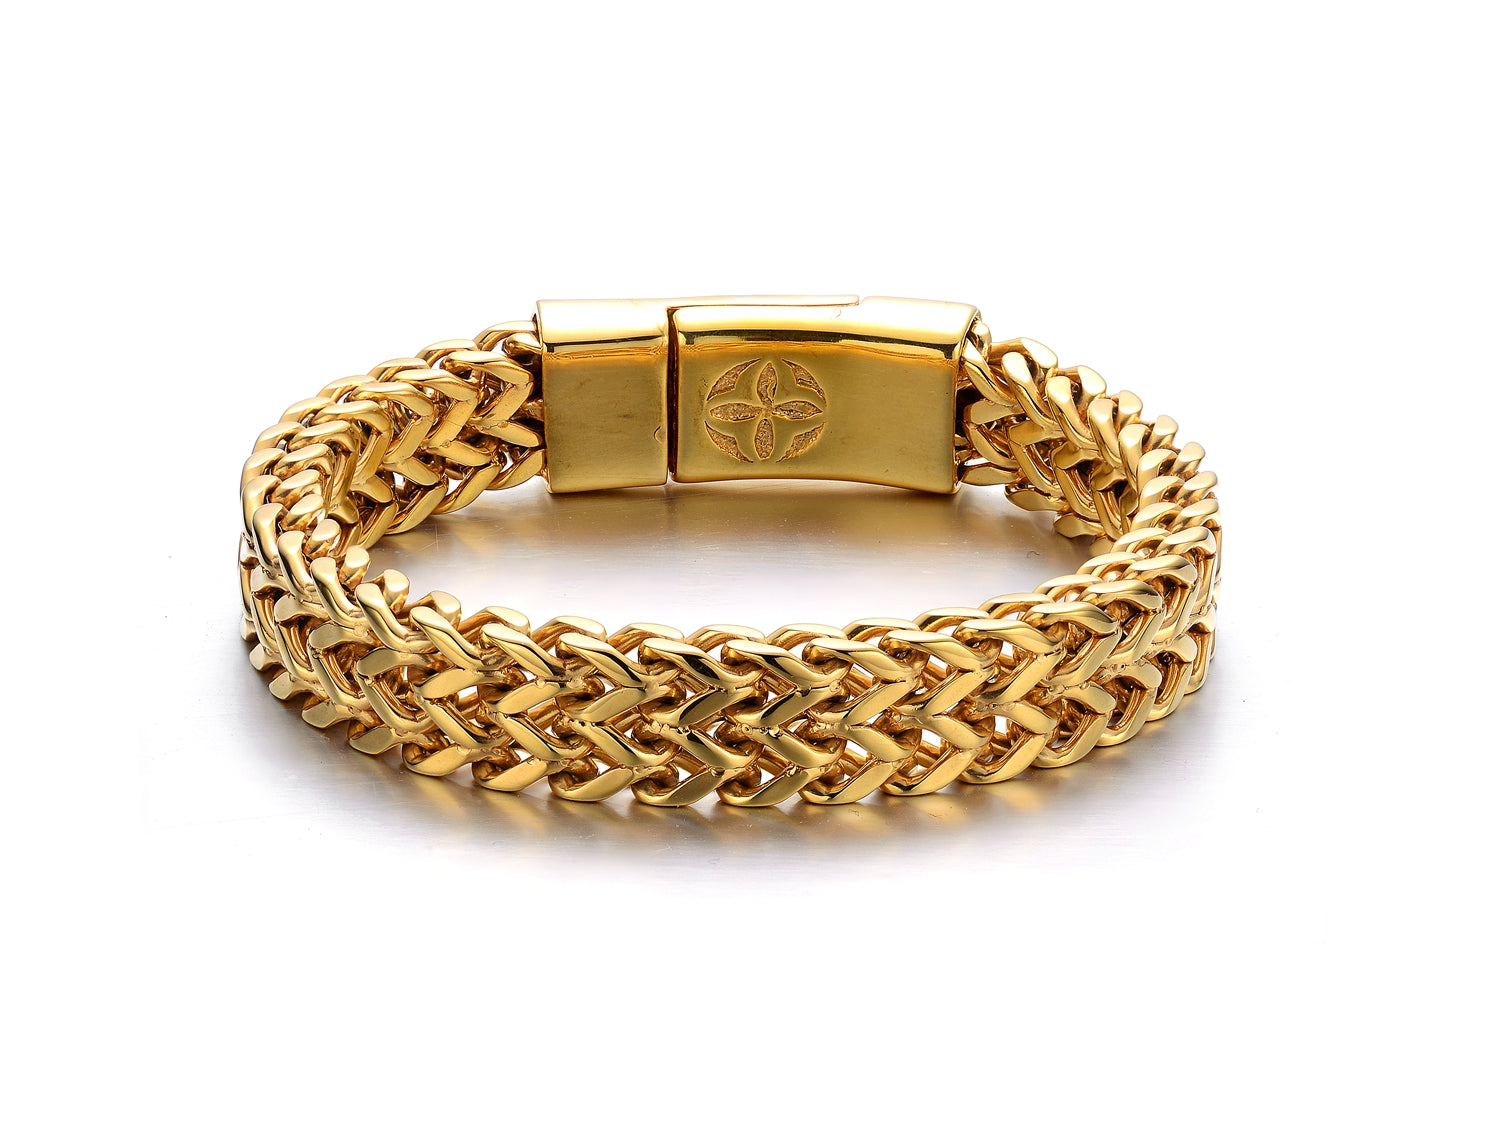 Wolverine Bracelet Goldtoned Men's or Unisex-Jewels to Jet-Magnetic Clasp Jewelry